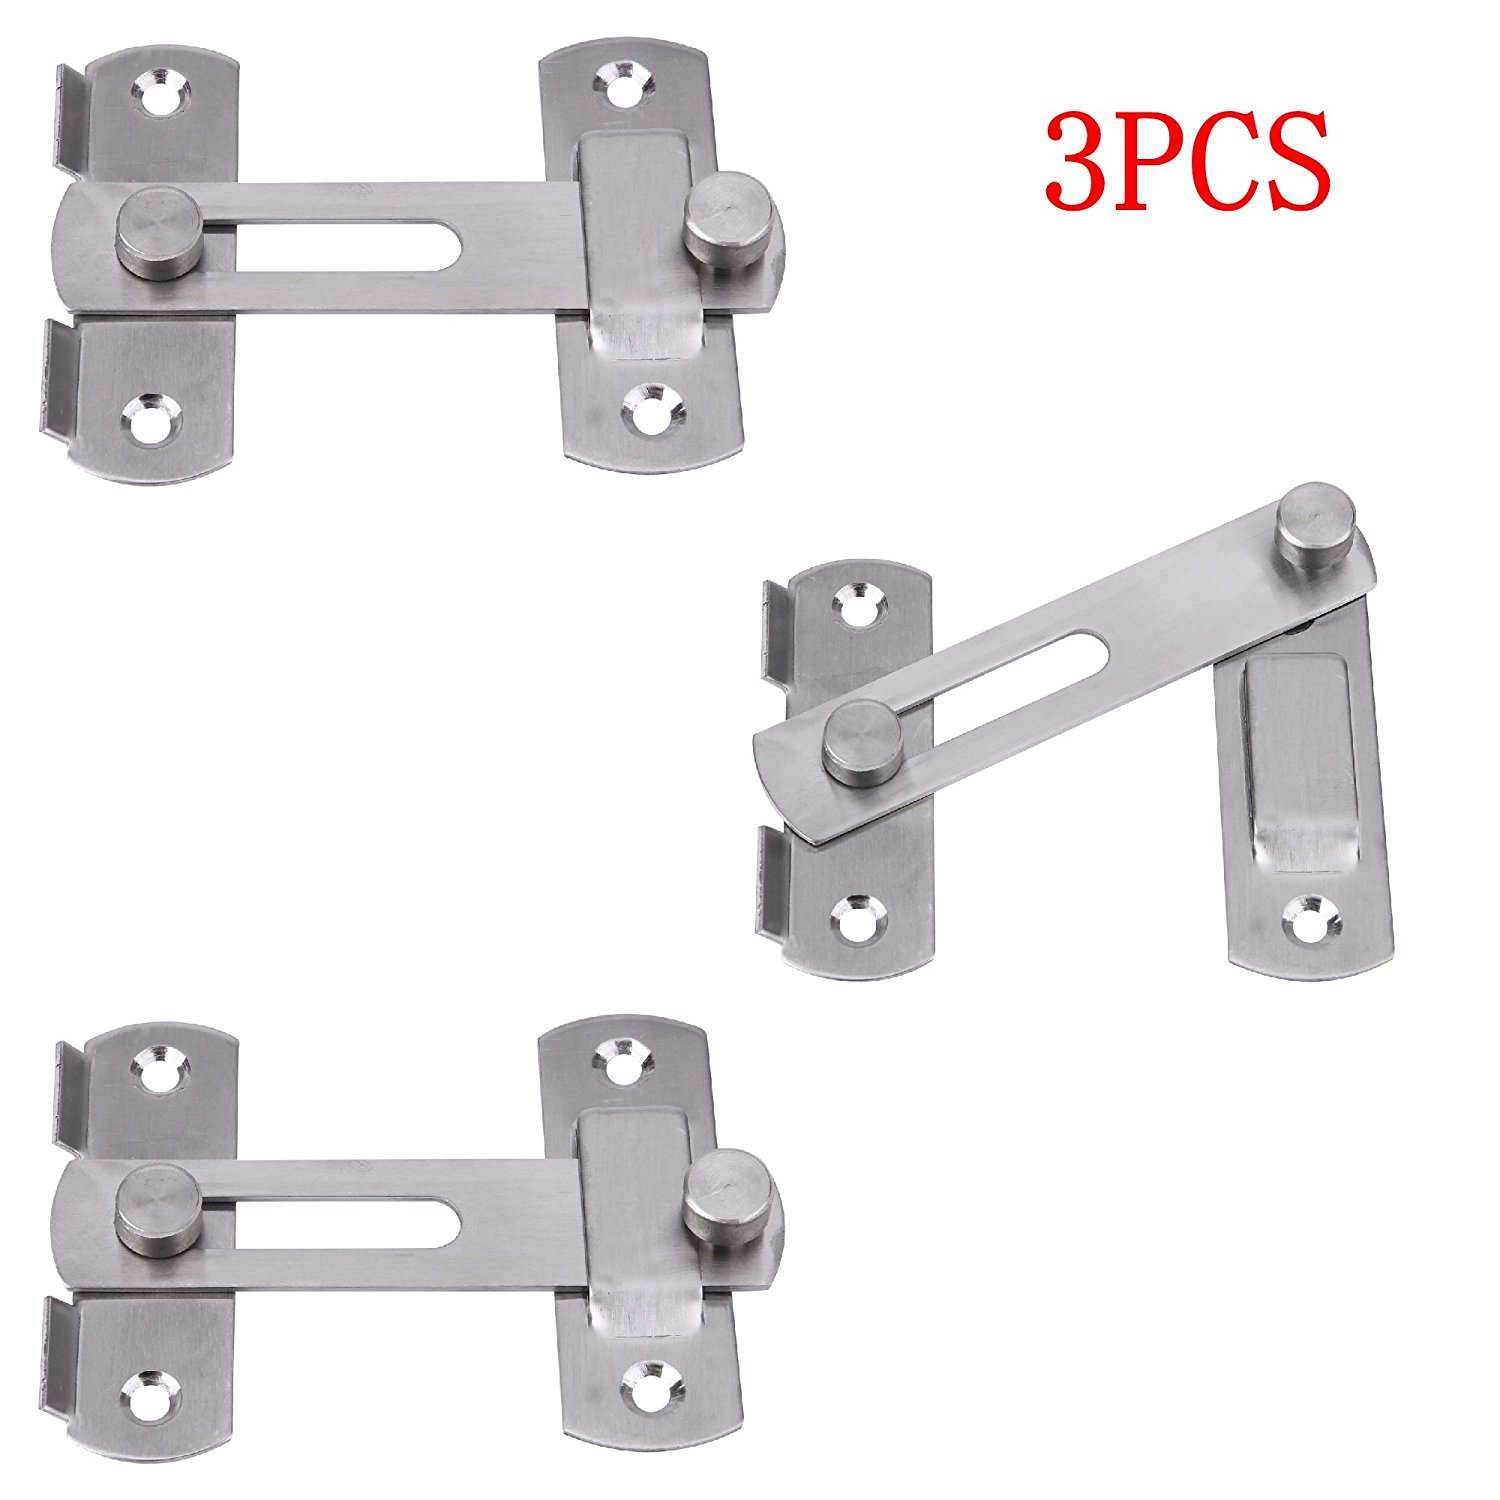 Creatyi 3 Pcs Stainless Steel Safety Door LatchesWindowFurniturePet Gate Lock  sc 1 st  Walmart & Creatyi 3 Pcs Stainless Steel Safety Door LatchesWindowFurniture ...